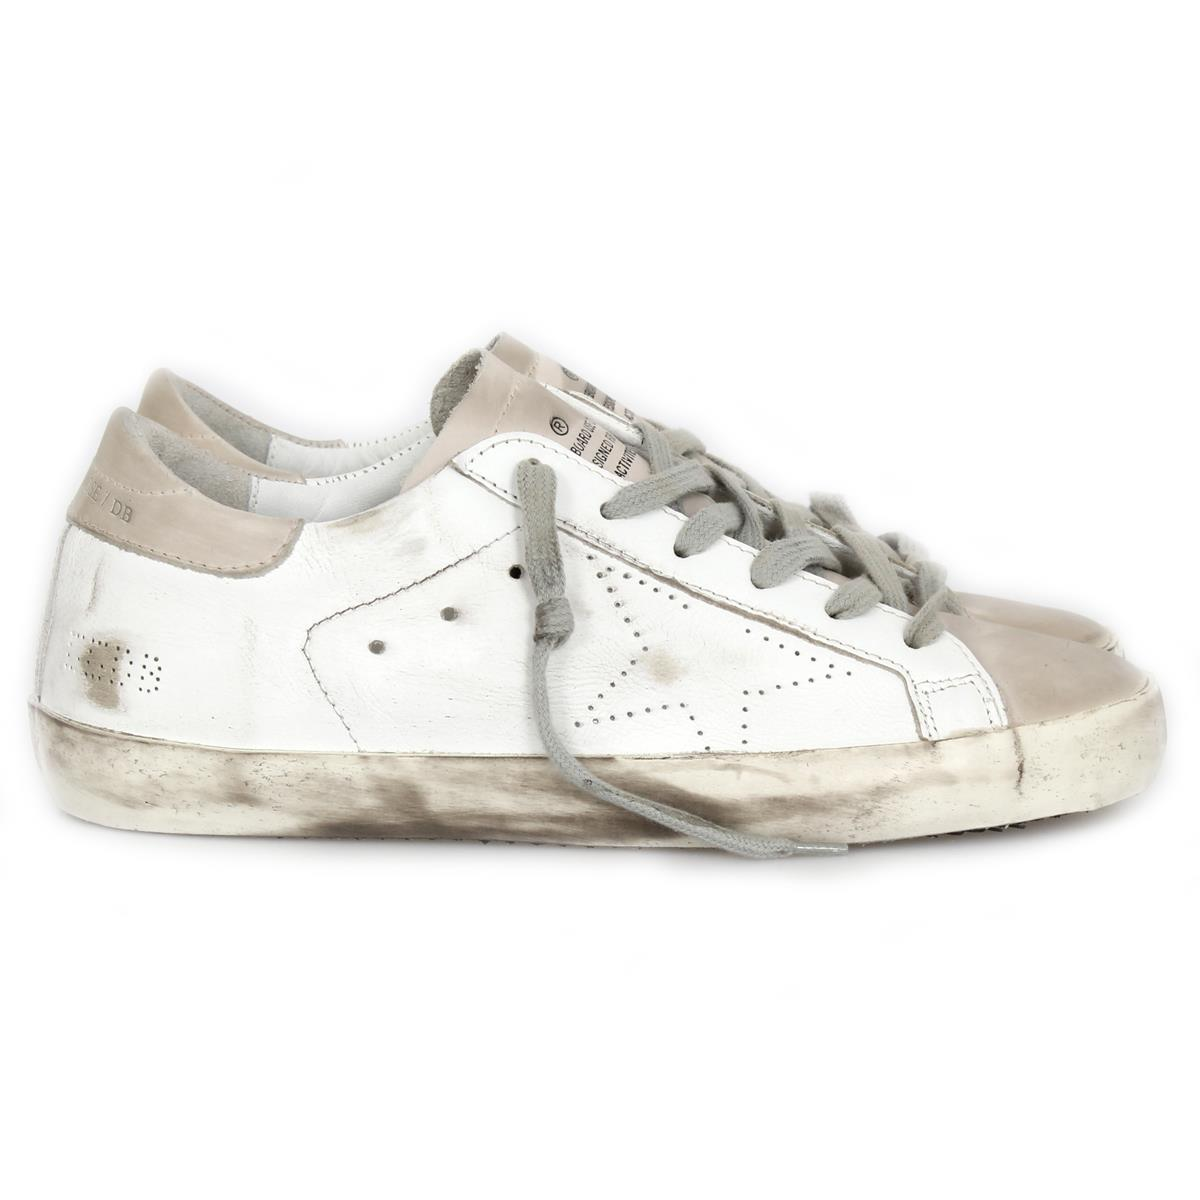 White and Grey Skate Superstar Sneakers Golden Goose uoXSiUh